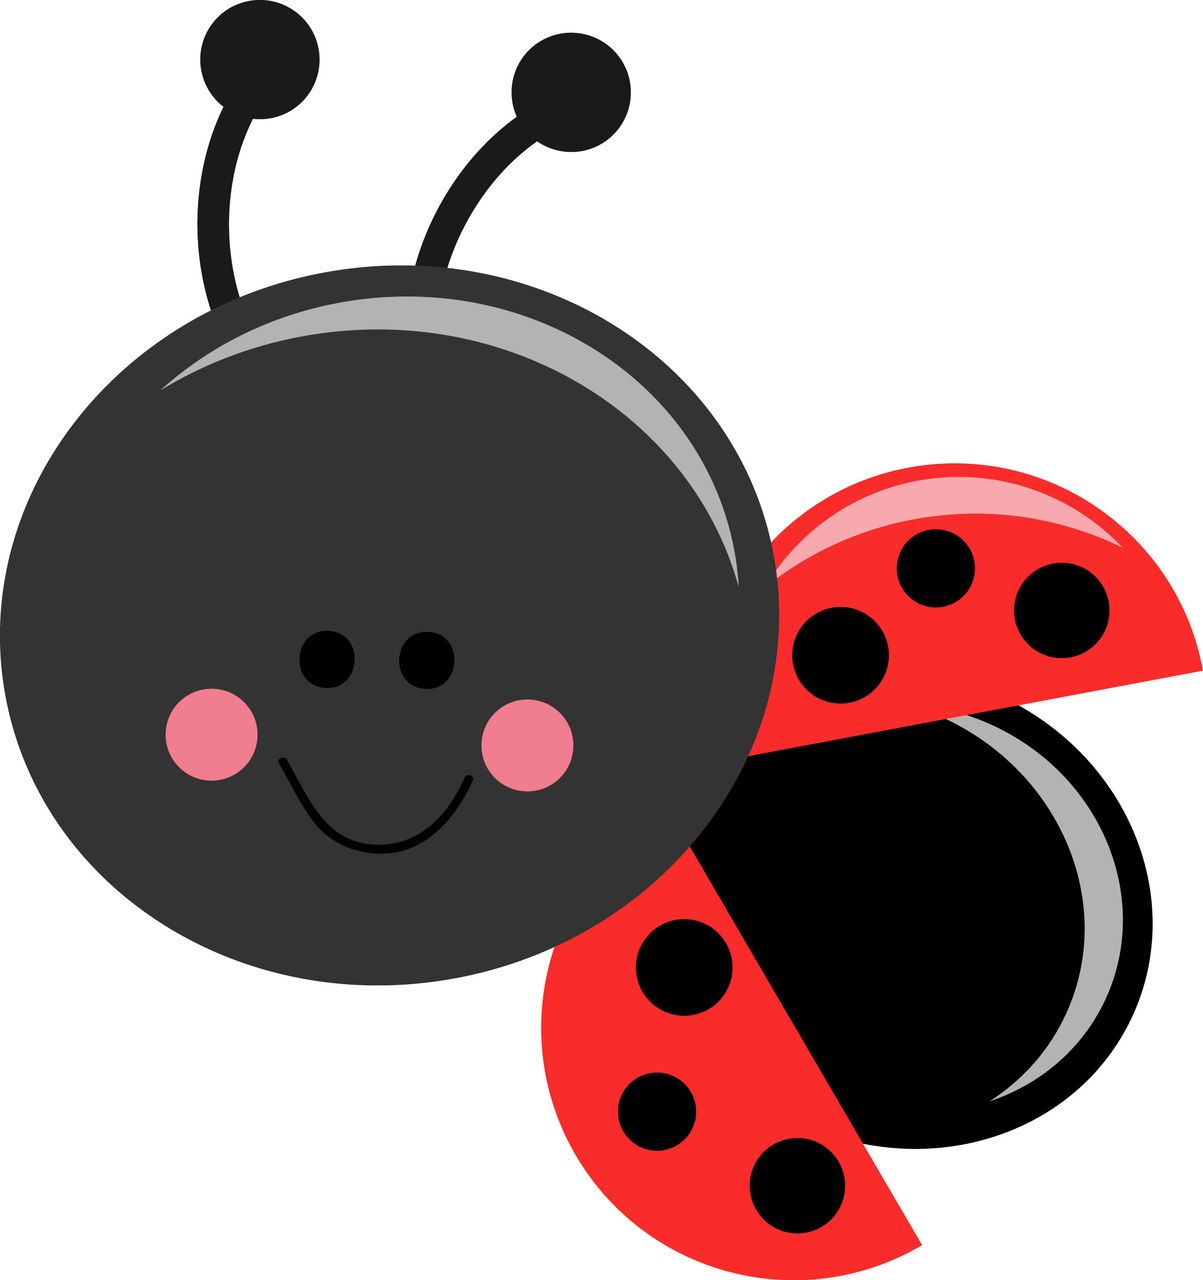 1203x1280 Ladybug Graphics Cute Ladybug Images Free Cliparts That You